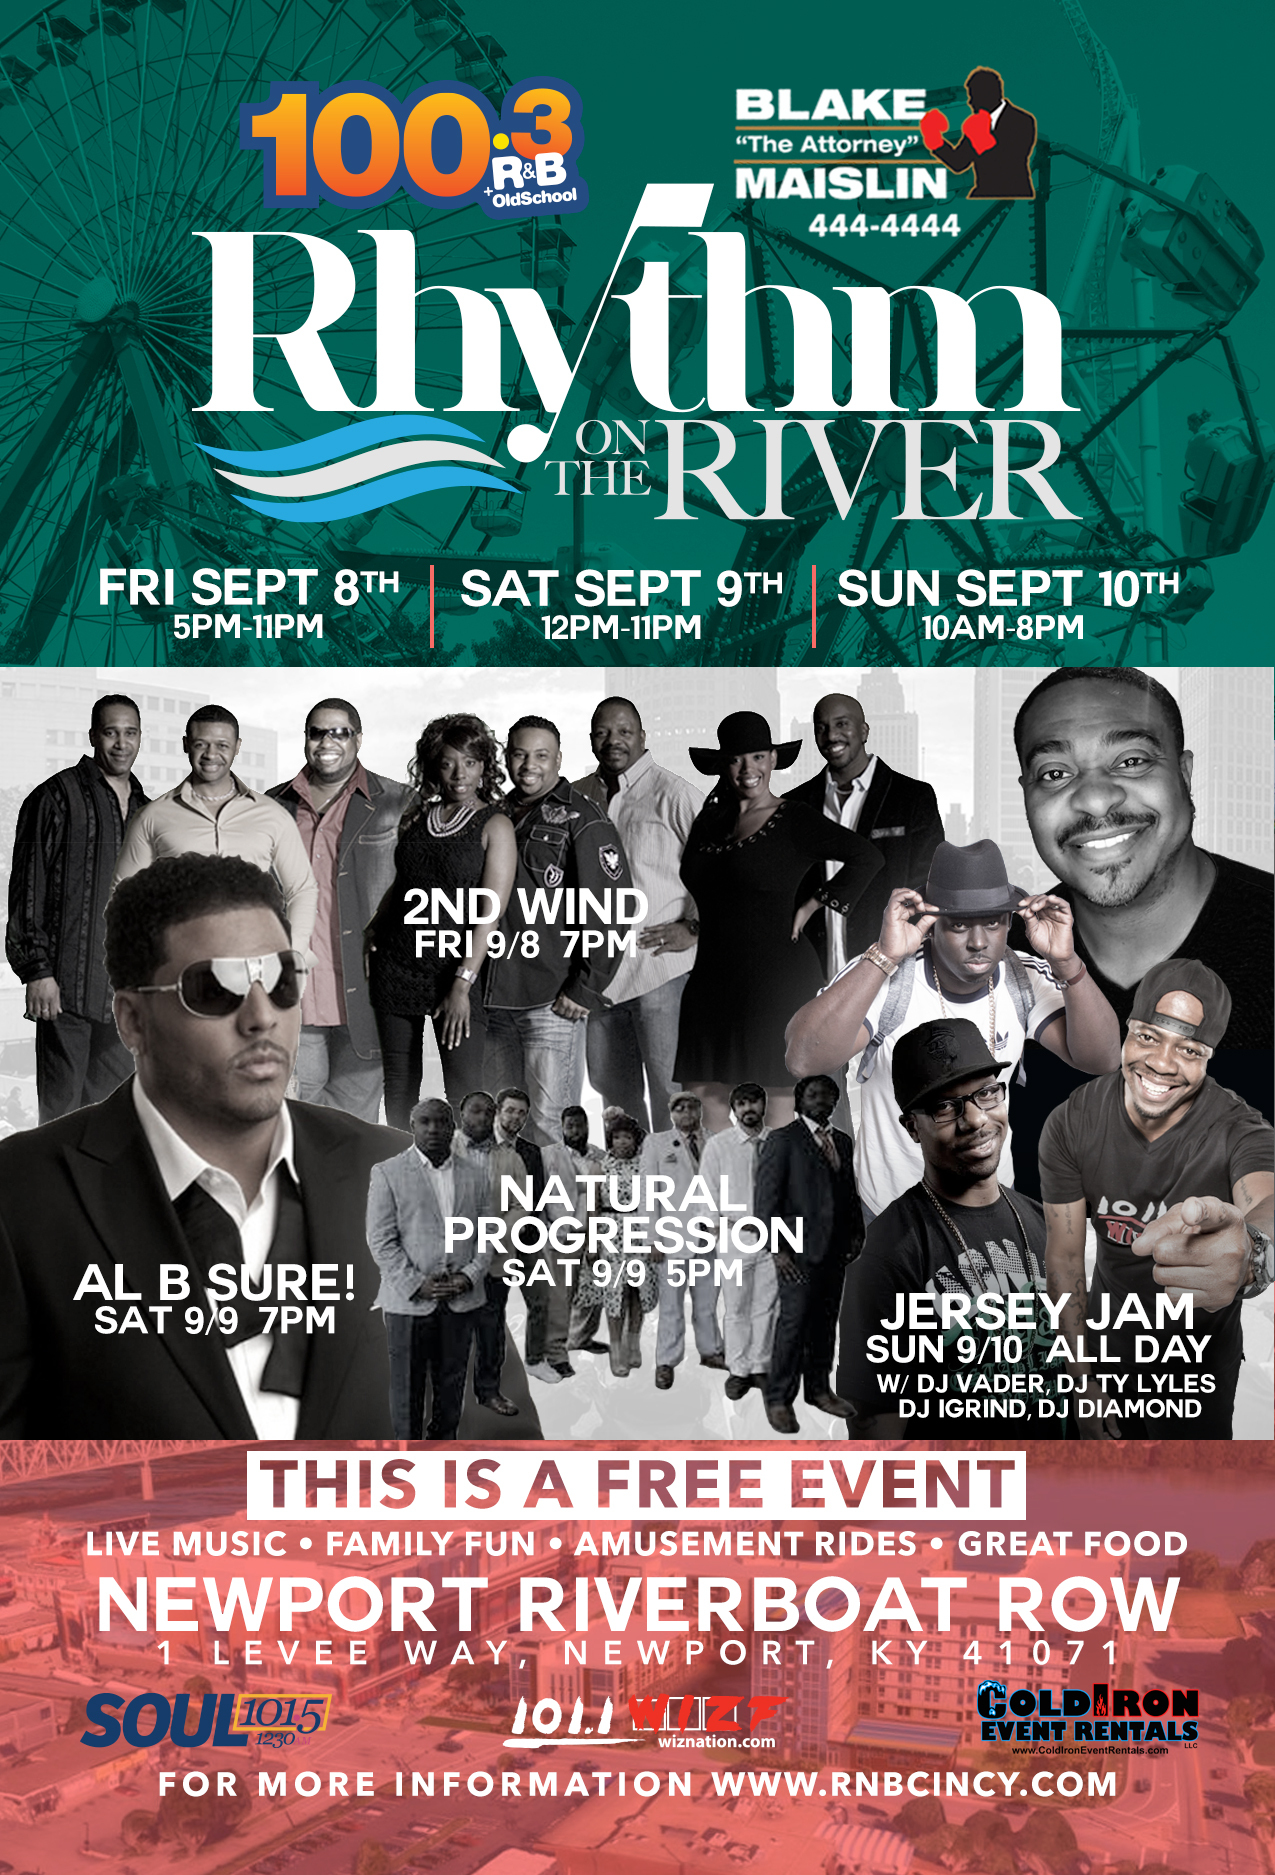 Al B. Sure! Performing at Rhythm on The River Newport, Kentucky Saturday September 9th, 2017